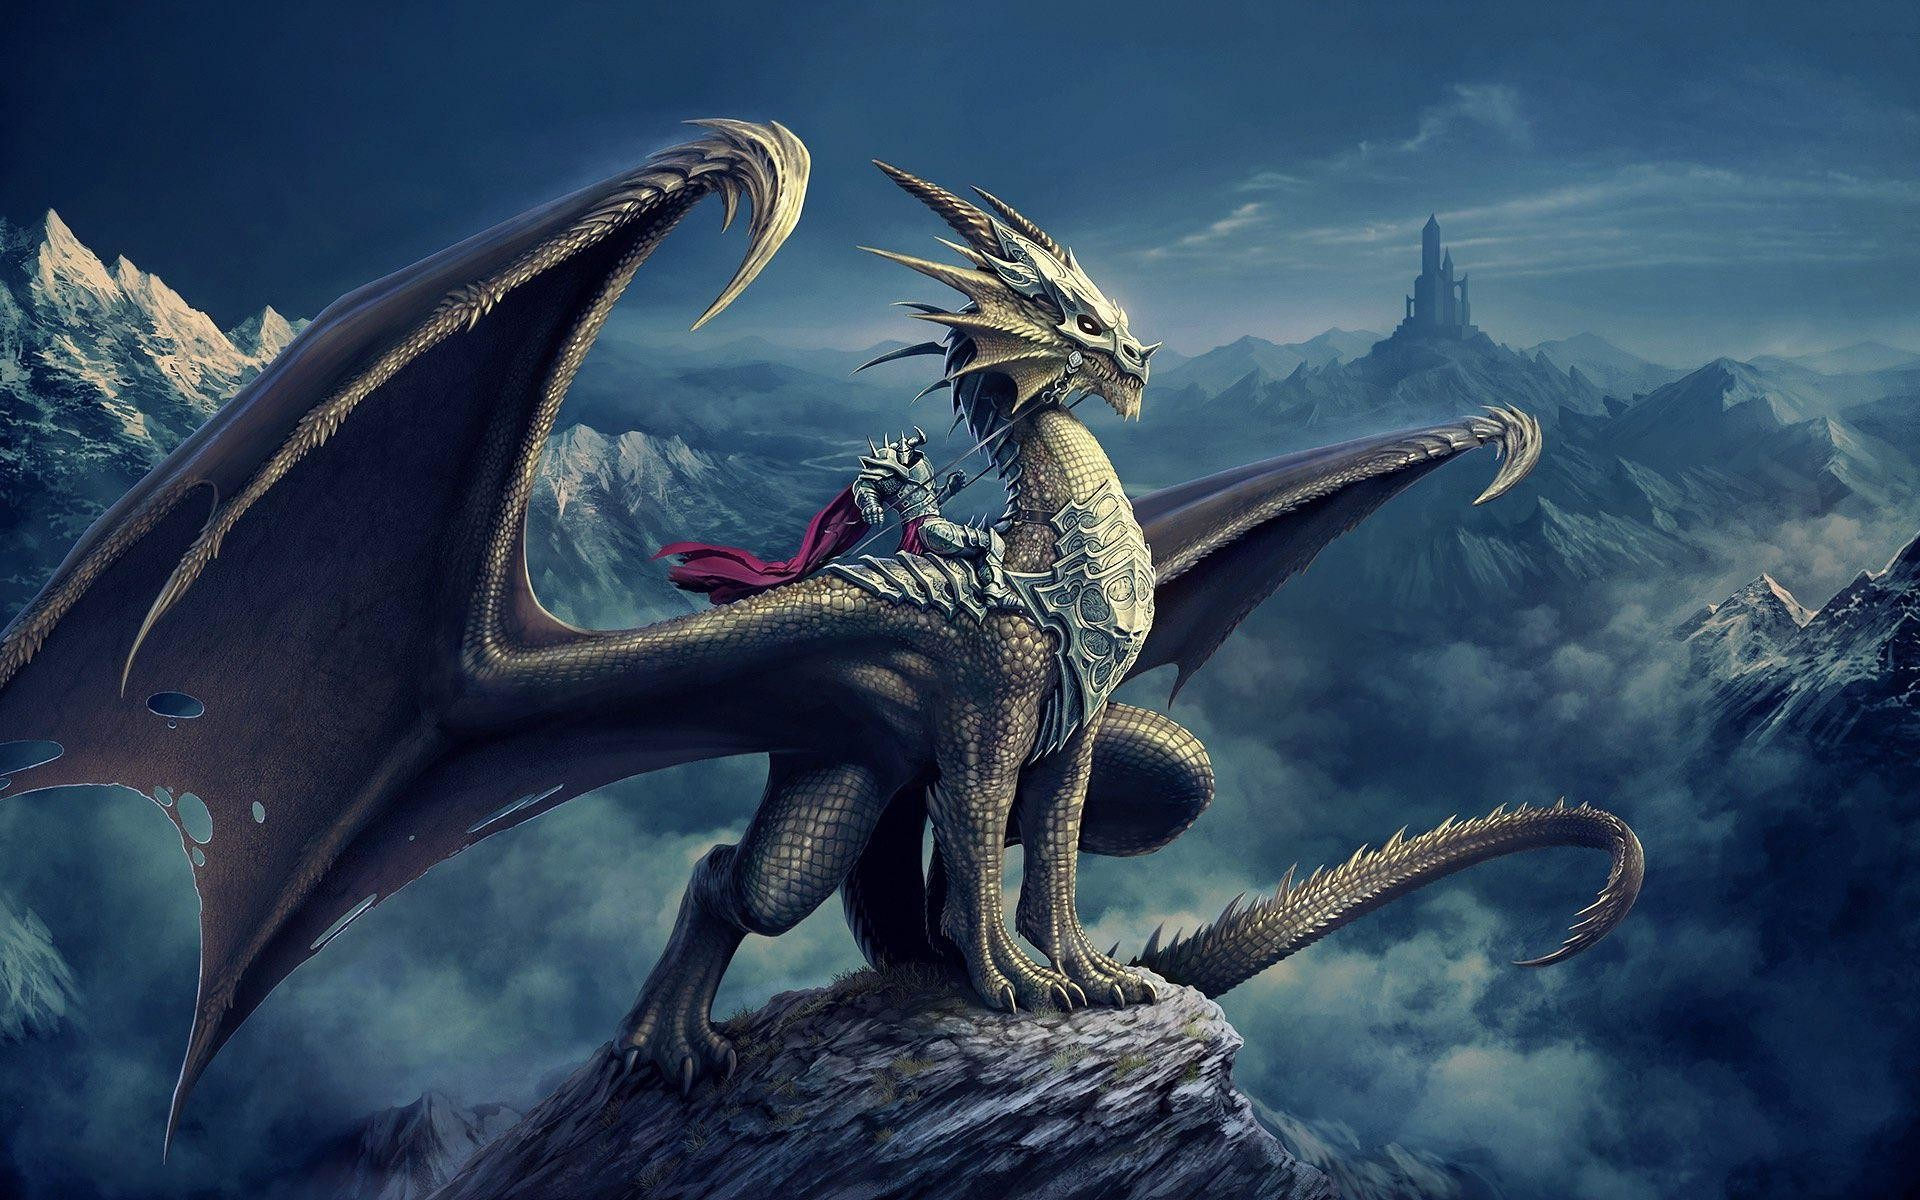 Blue dragon wallpaper hd 70 images 1920x1200 3d dragon knight fantasy wallpaper 2586 wallpaper best wallpaper hd voltagebd Gallery